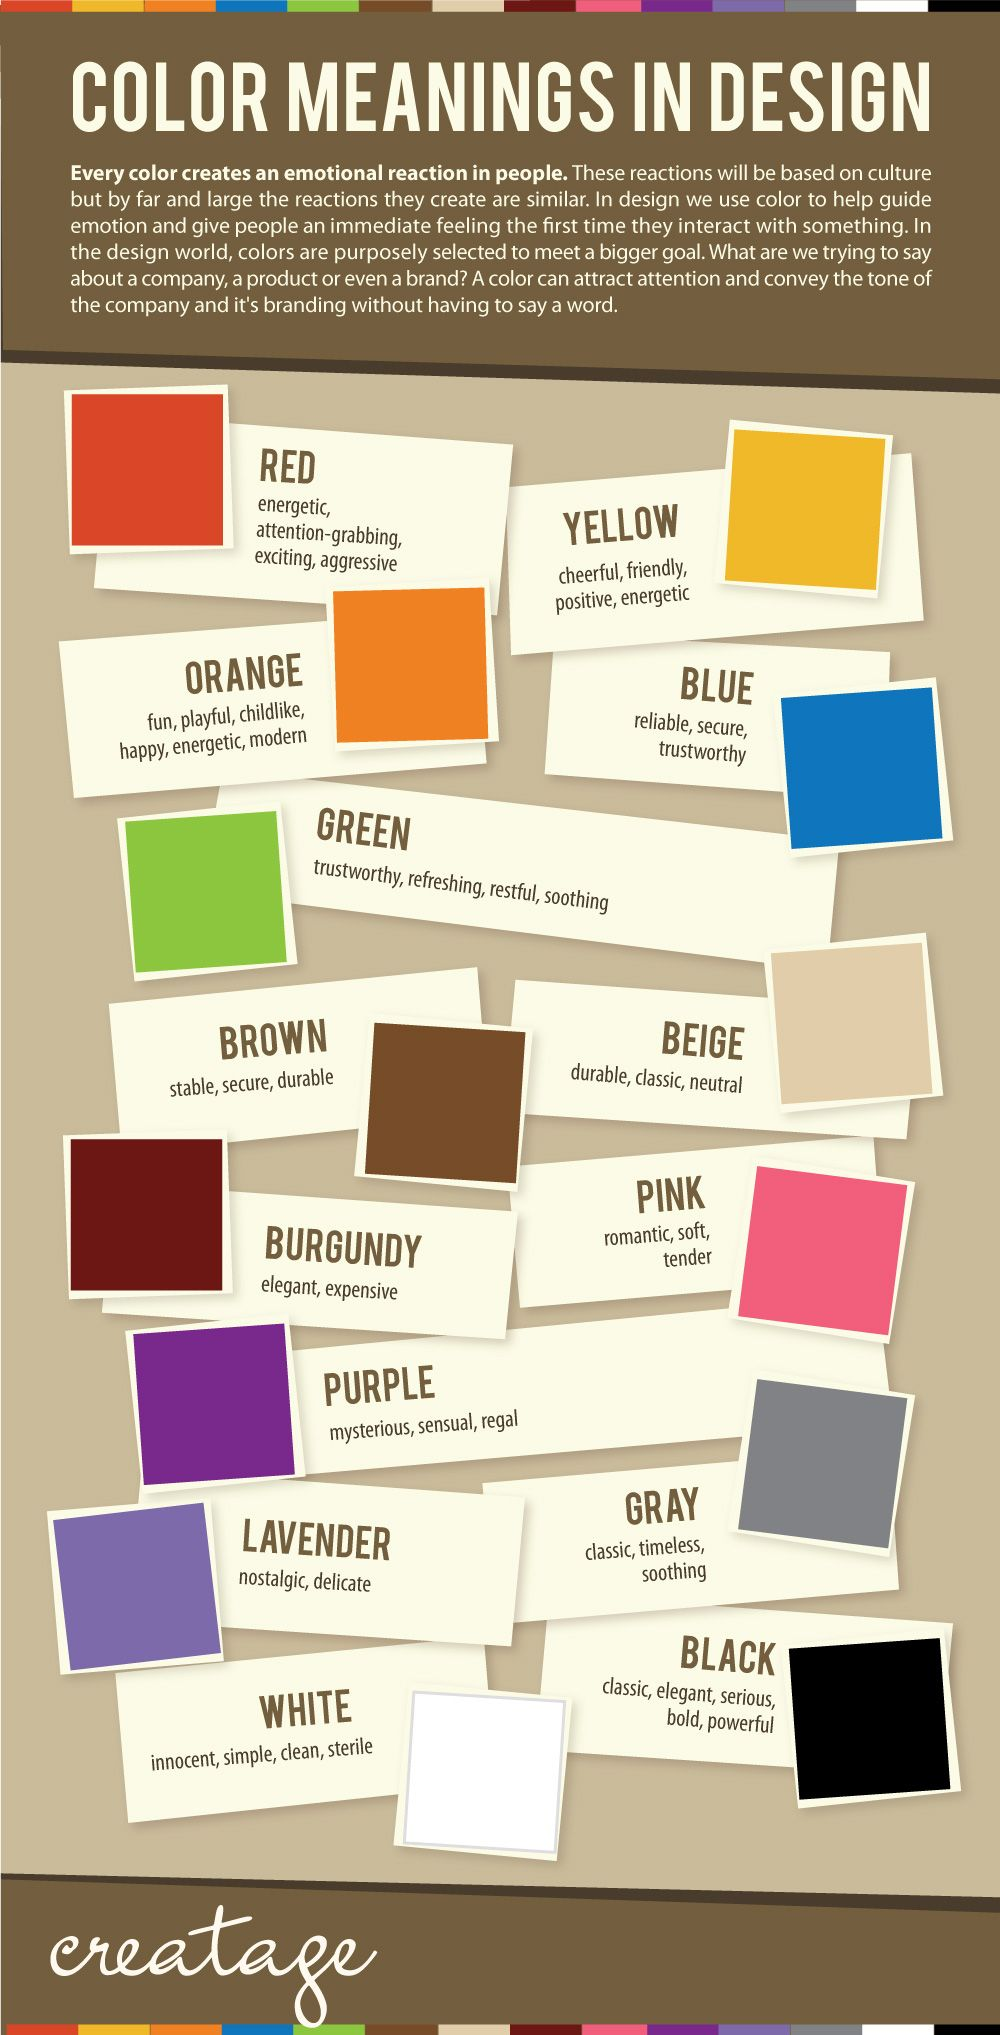 Color Meaning In Design How Everyday Colors Create Emotional Reactions People